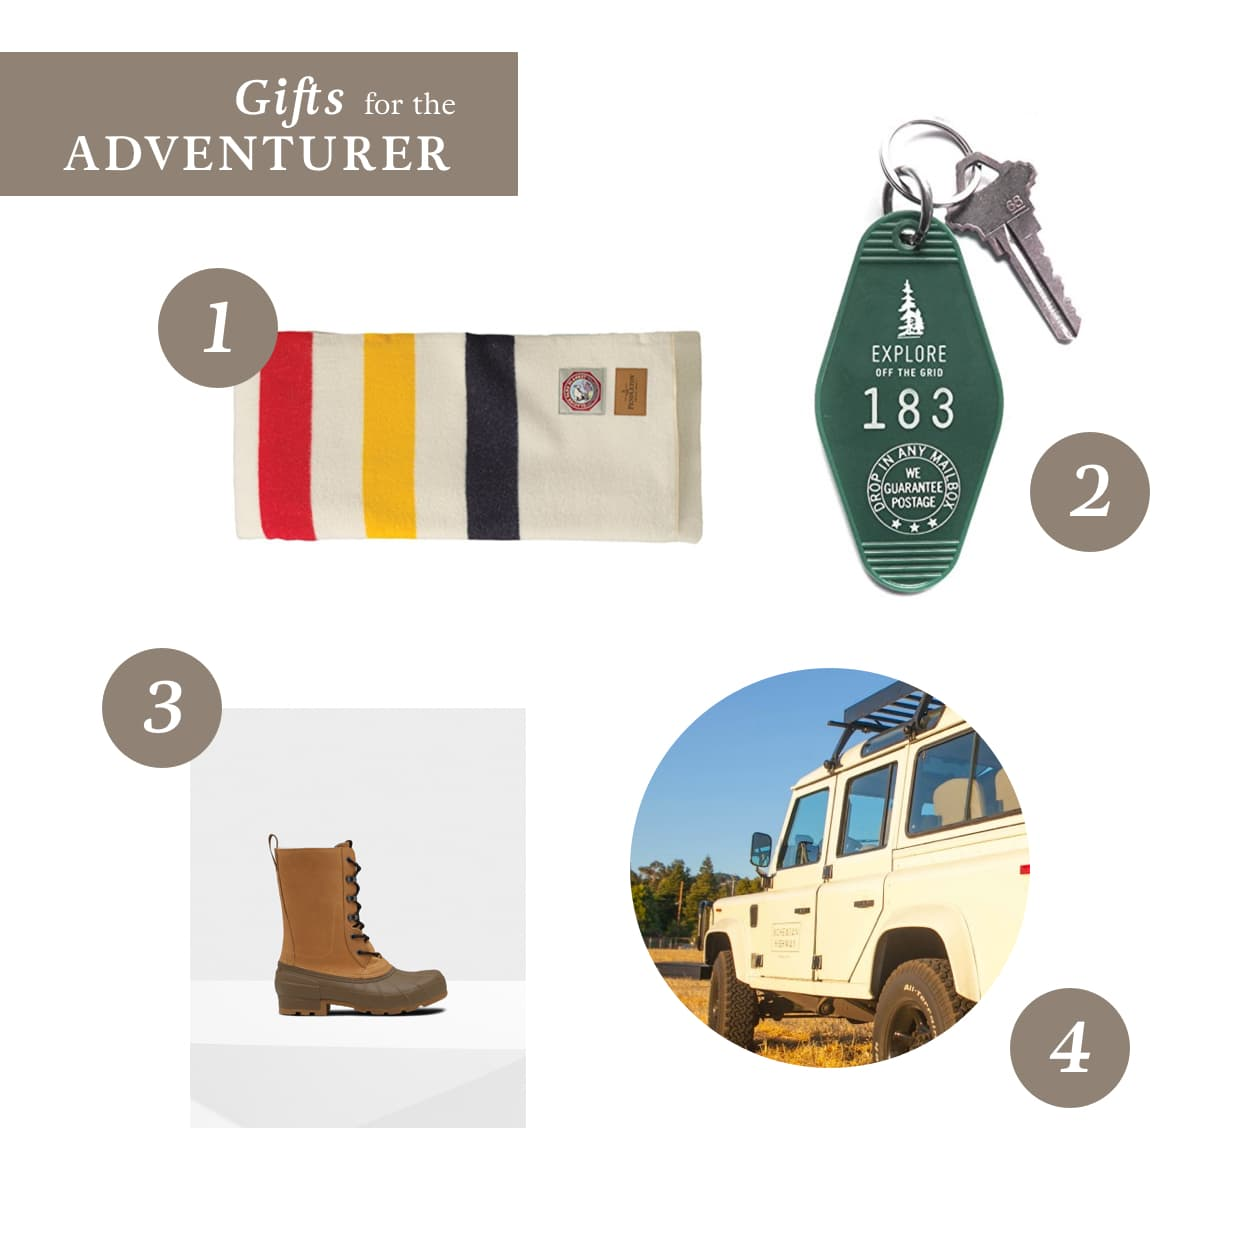 2017 WineCountry Holiday Gift Guide - Gifts for the Adventurer